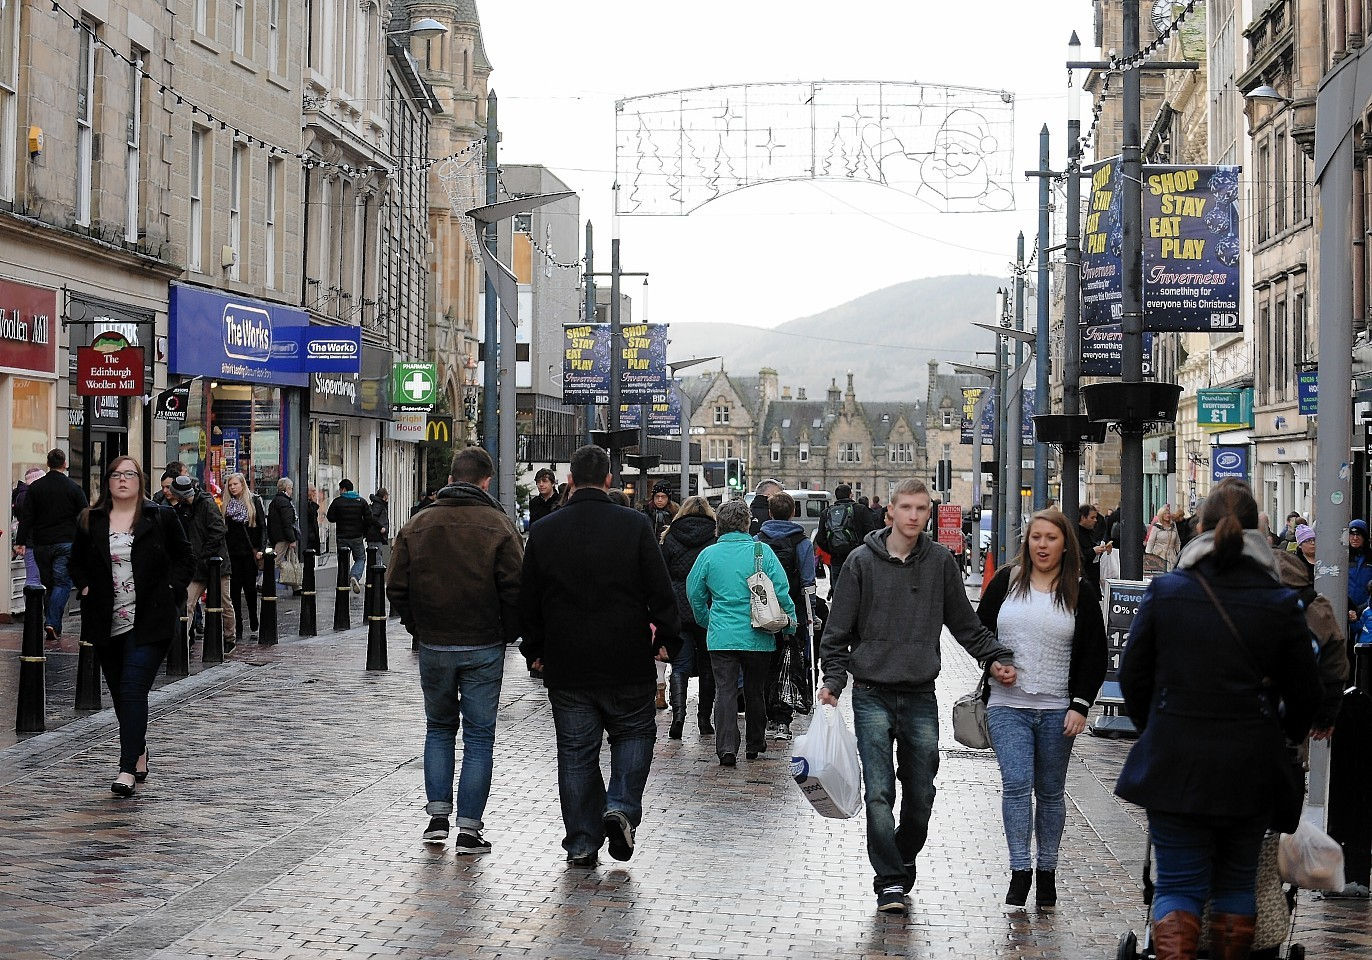 Shopping on Inverness high street